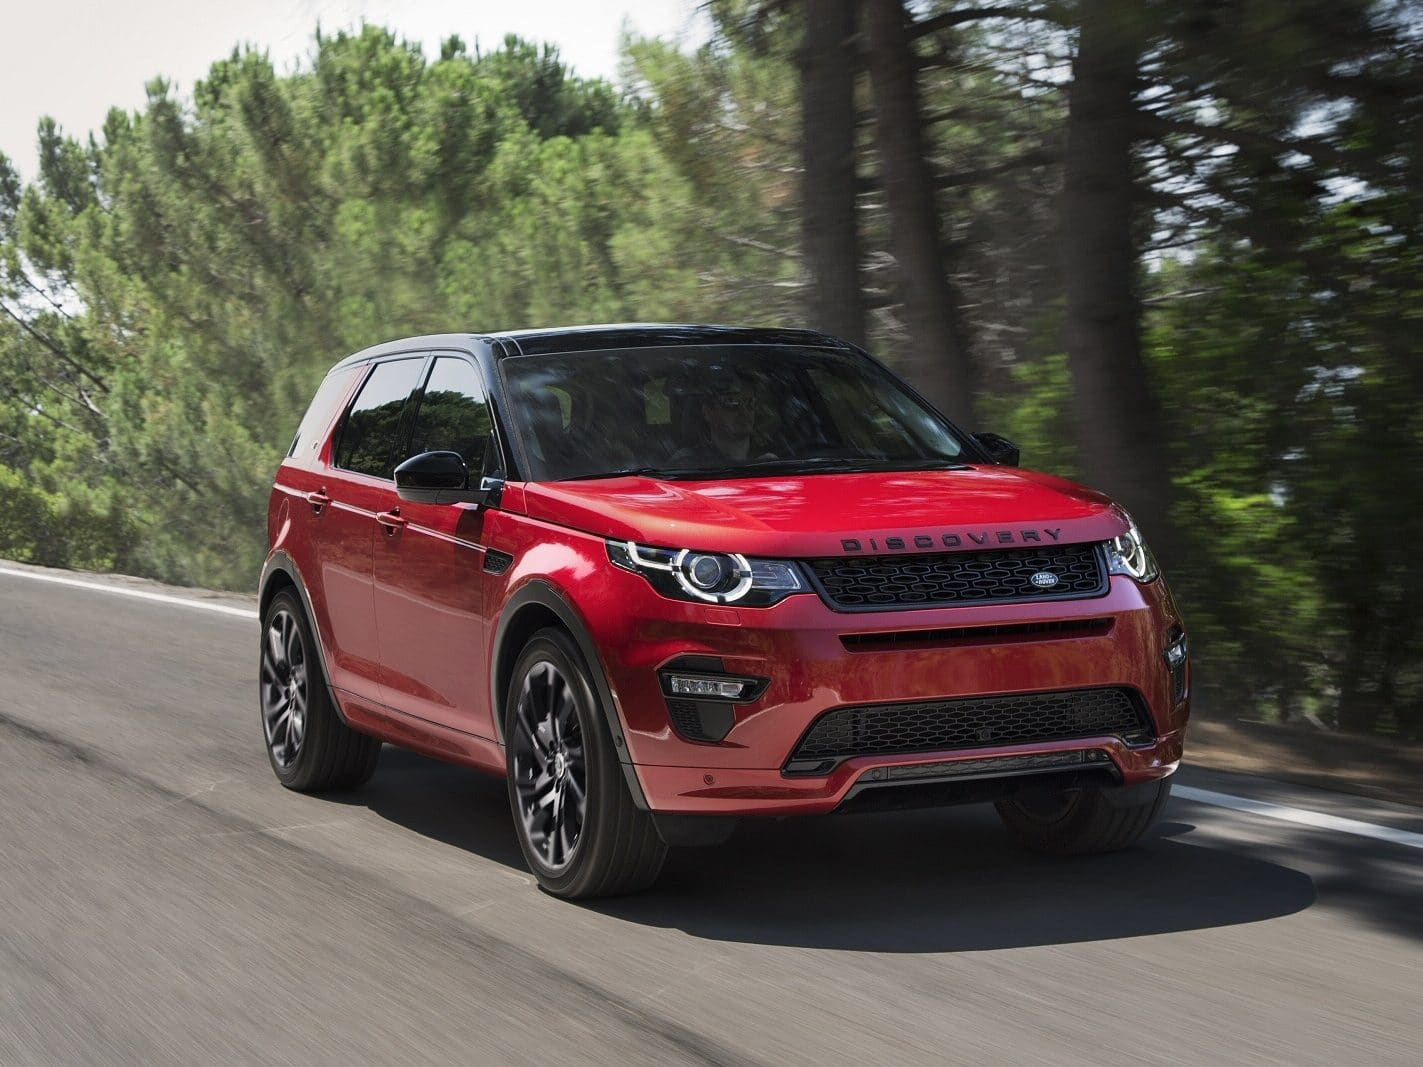 Land Rover Discovery Sport Diesel 2.0TDI 180 Landmark Auto